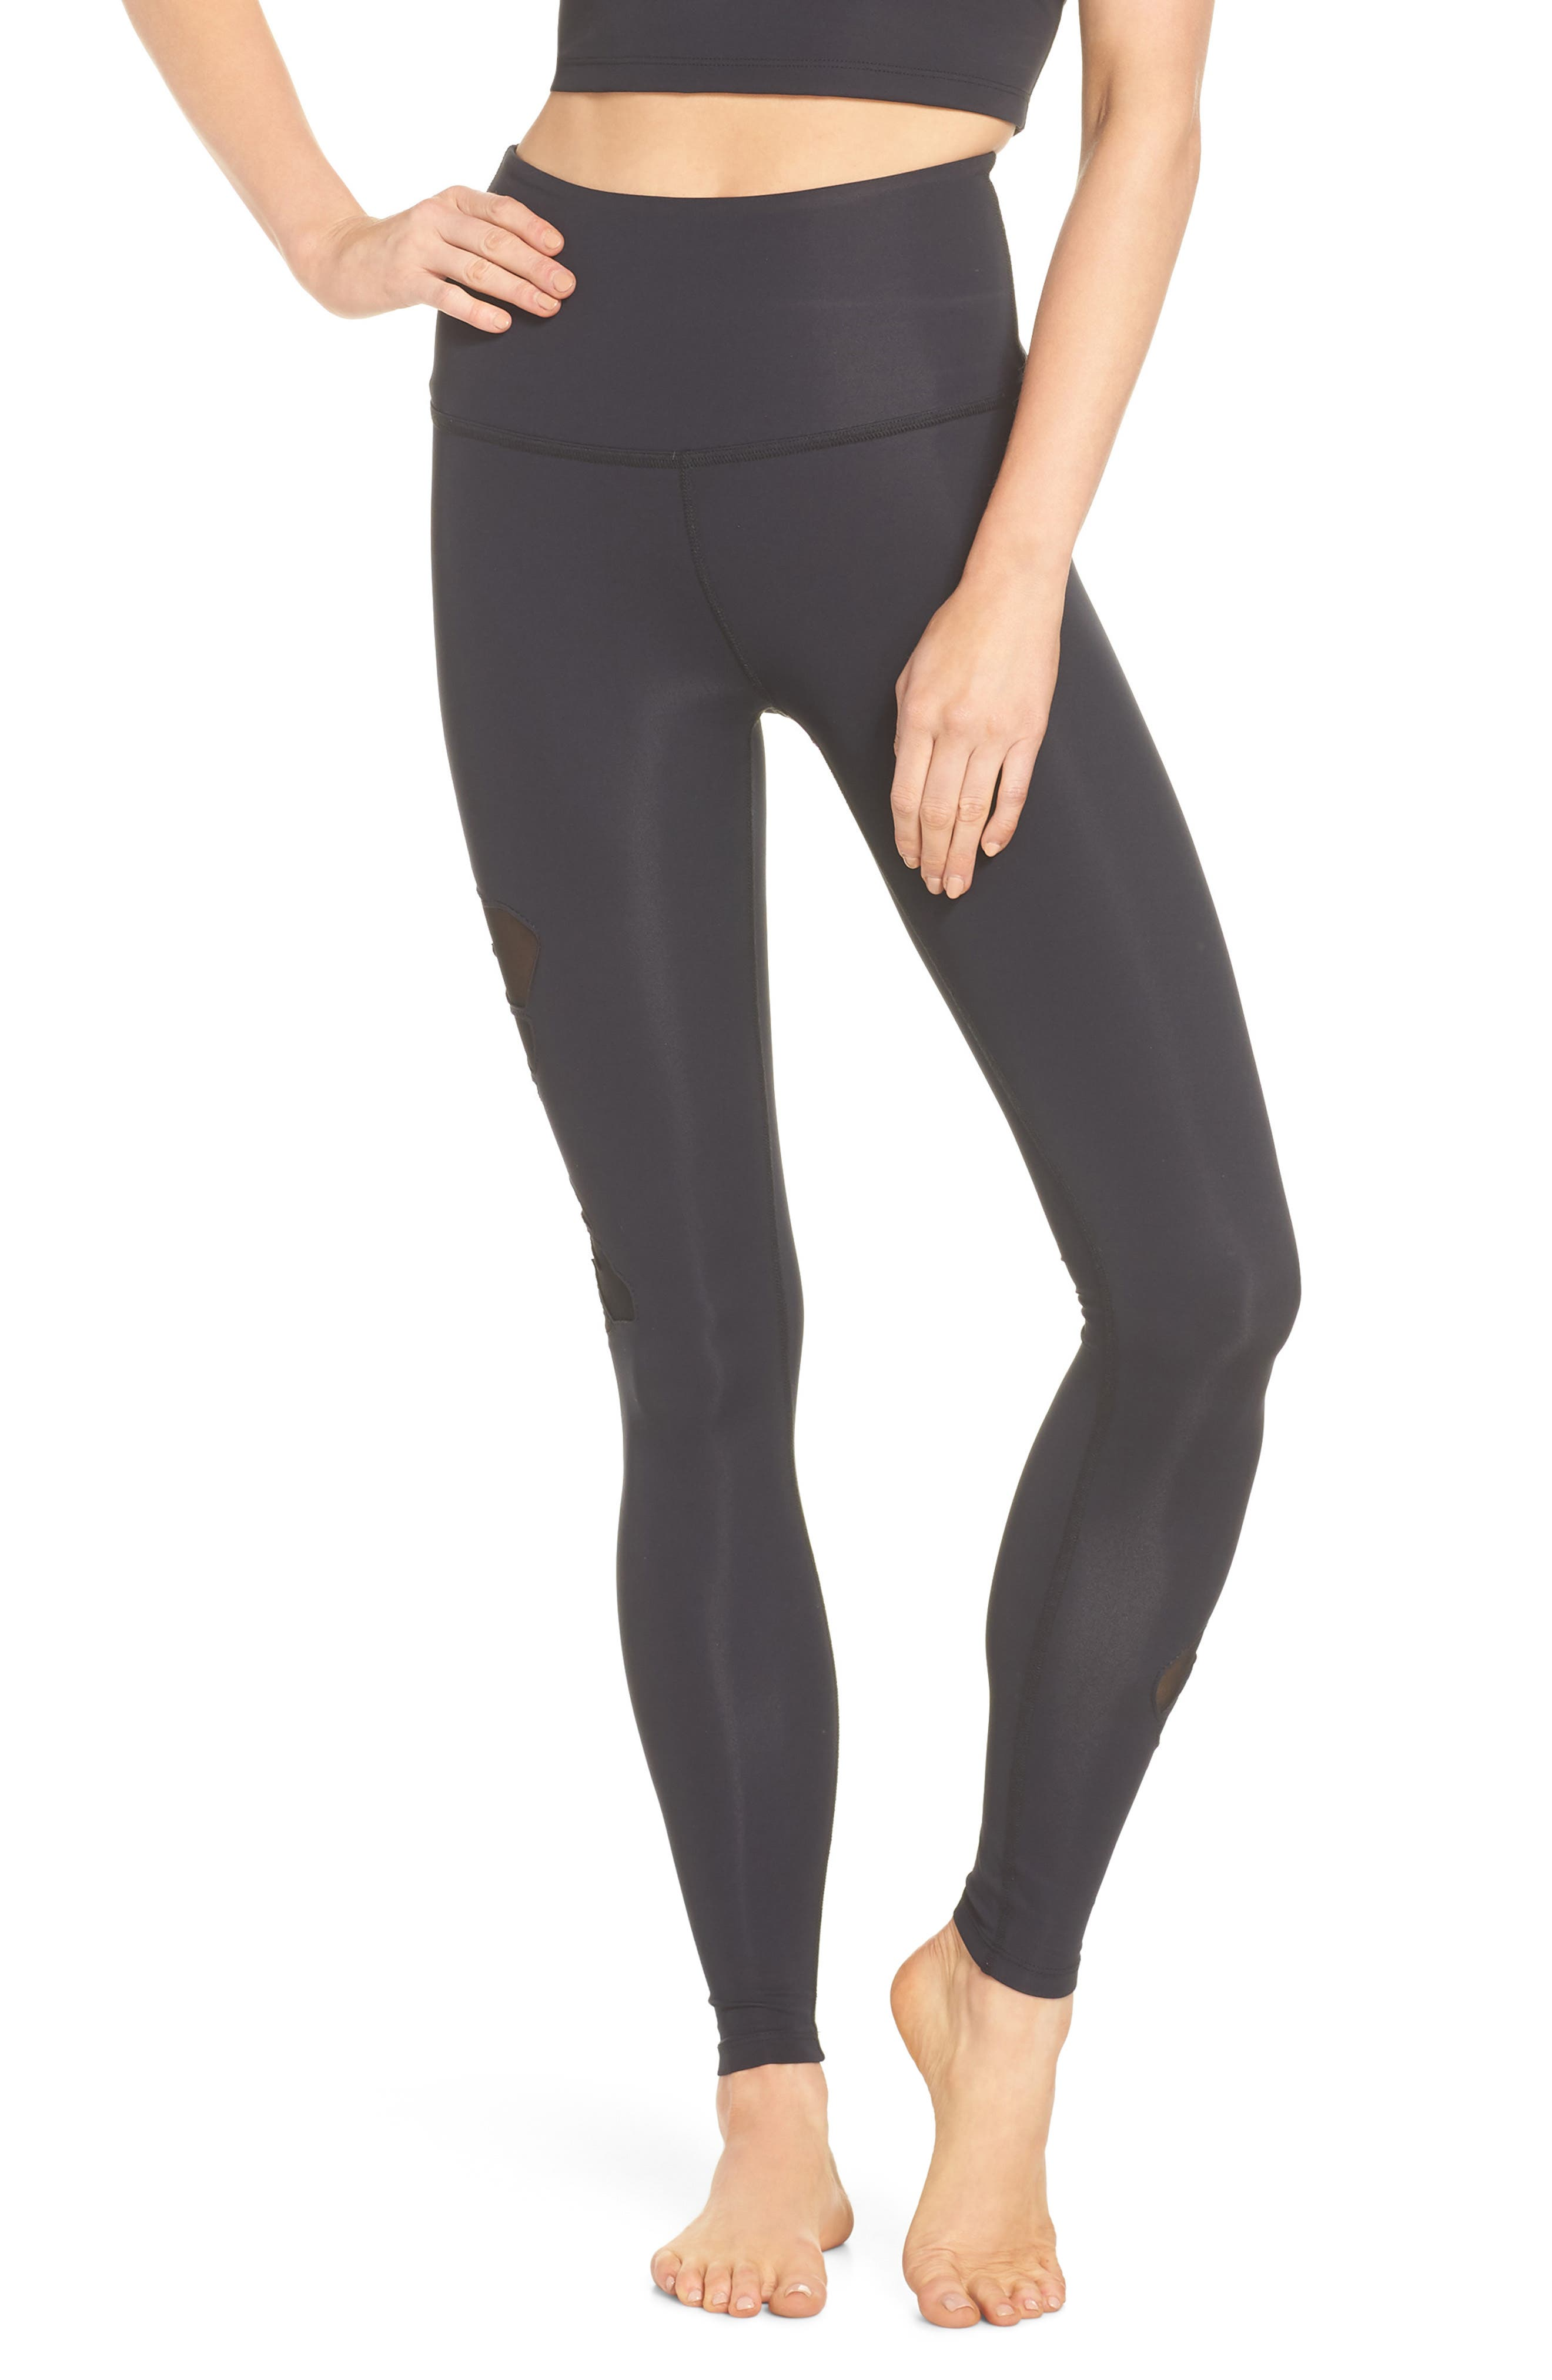 Take Leaf High Waist Leggings,                         Main,                         color, Black